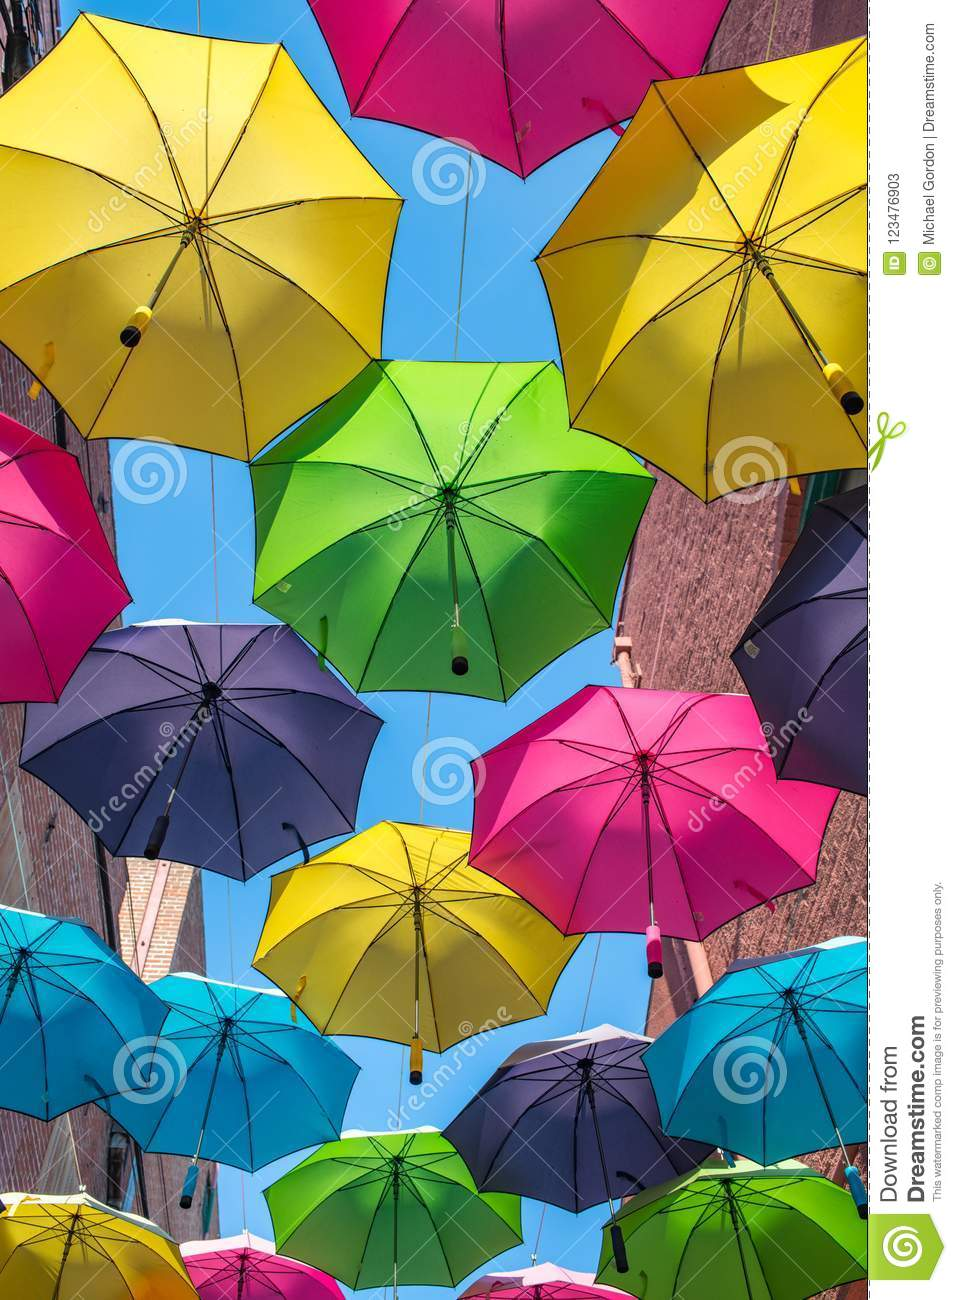 Colorful Umbrellas Outdoors Stock Image - Image of weather, cute ...